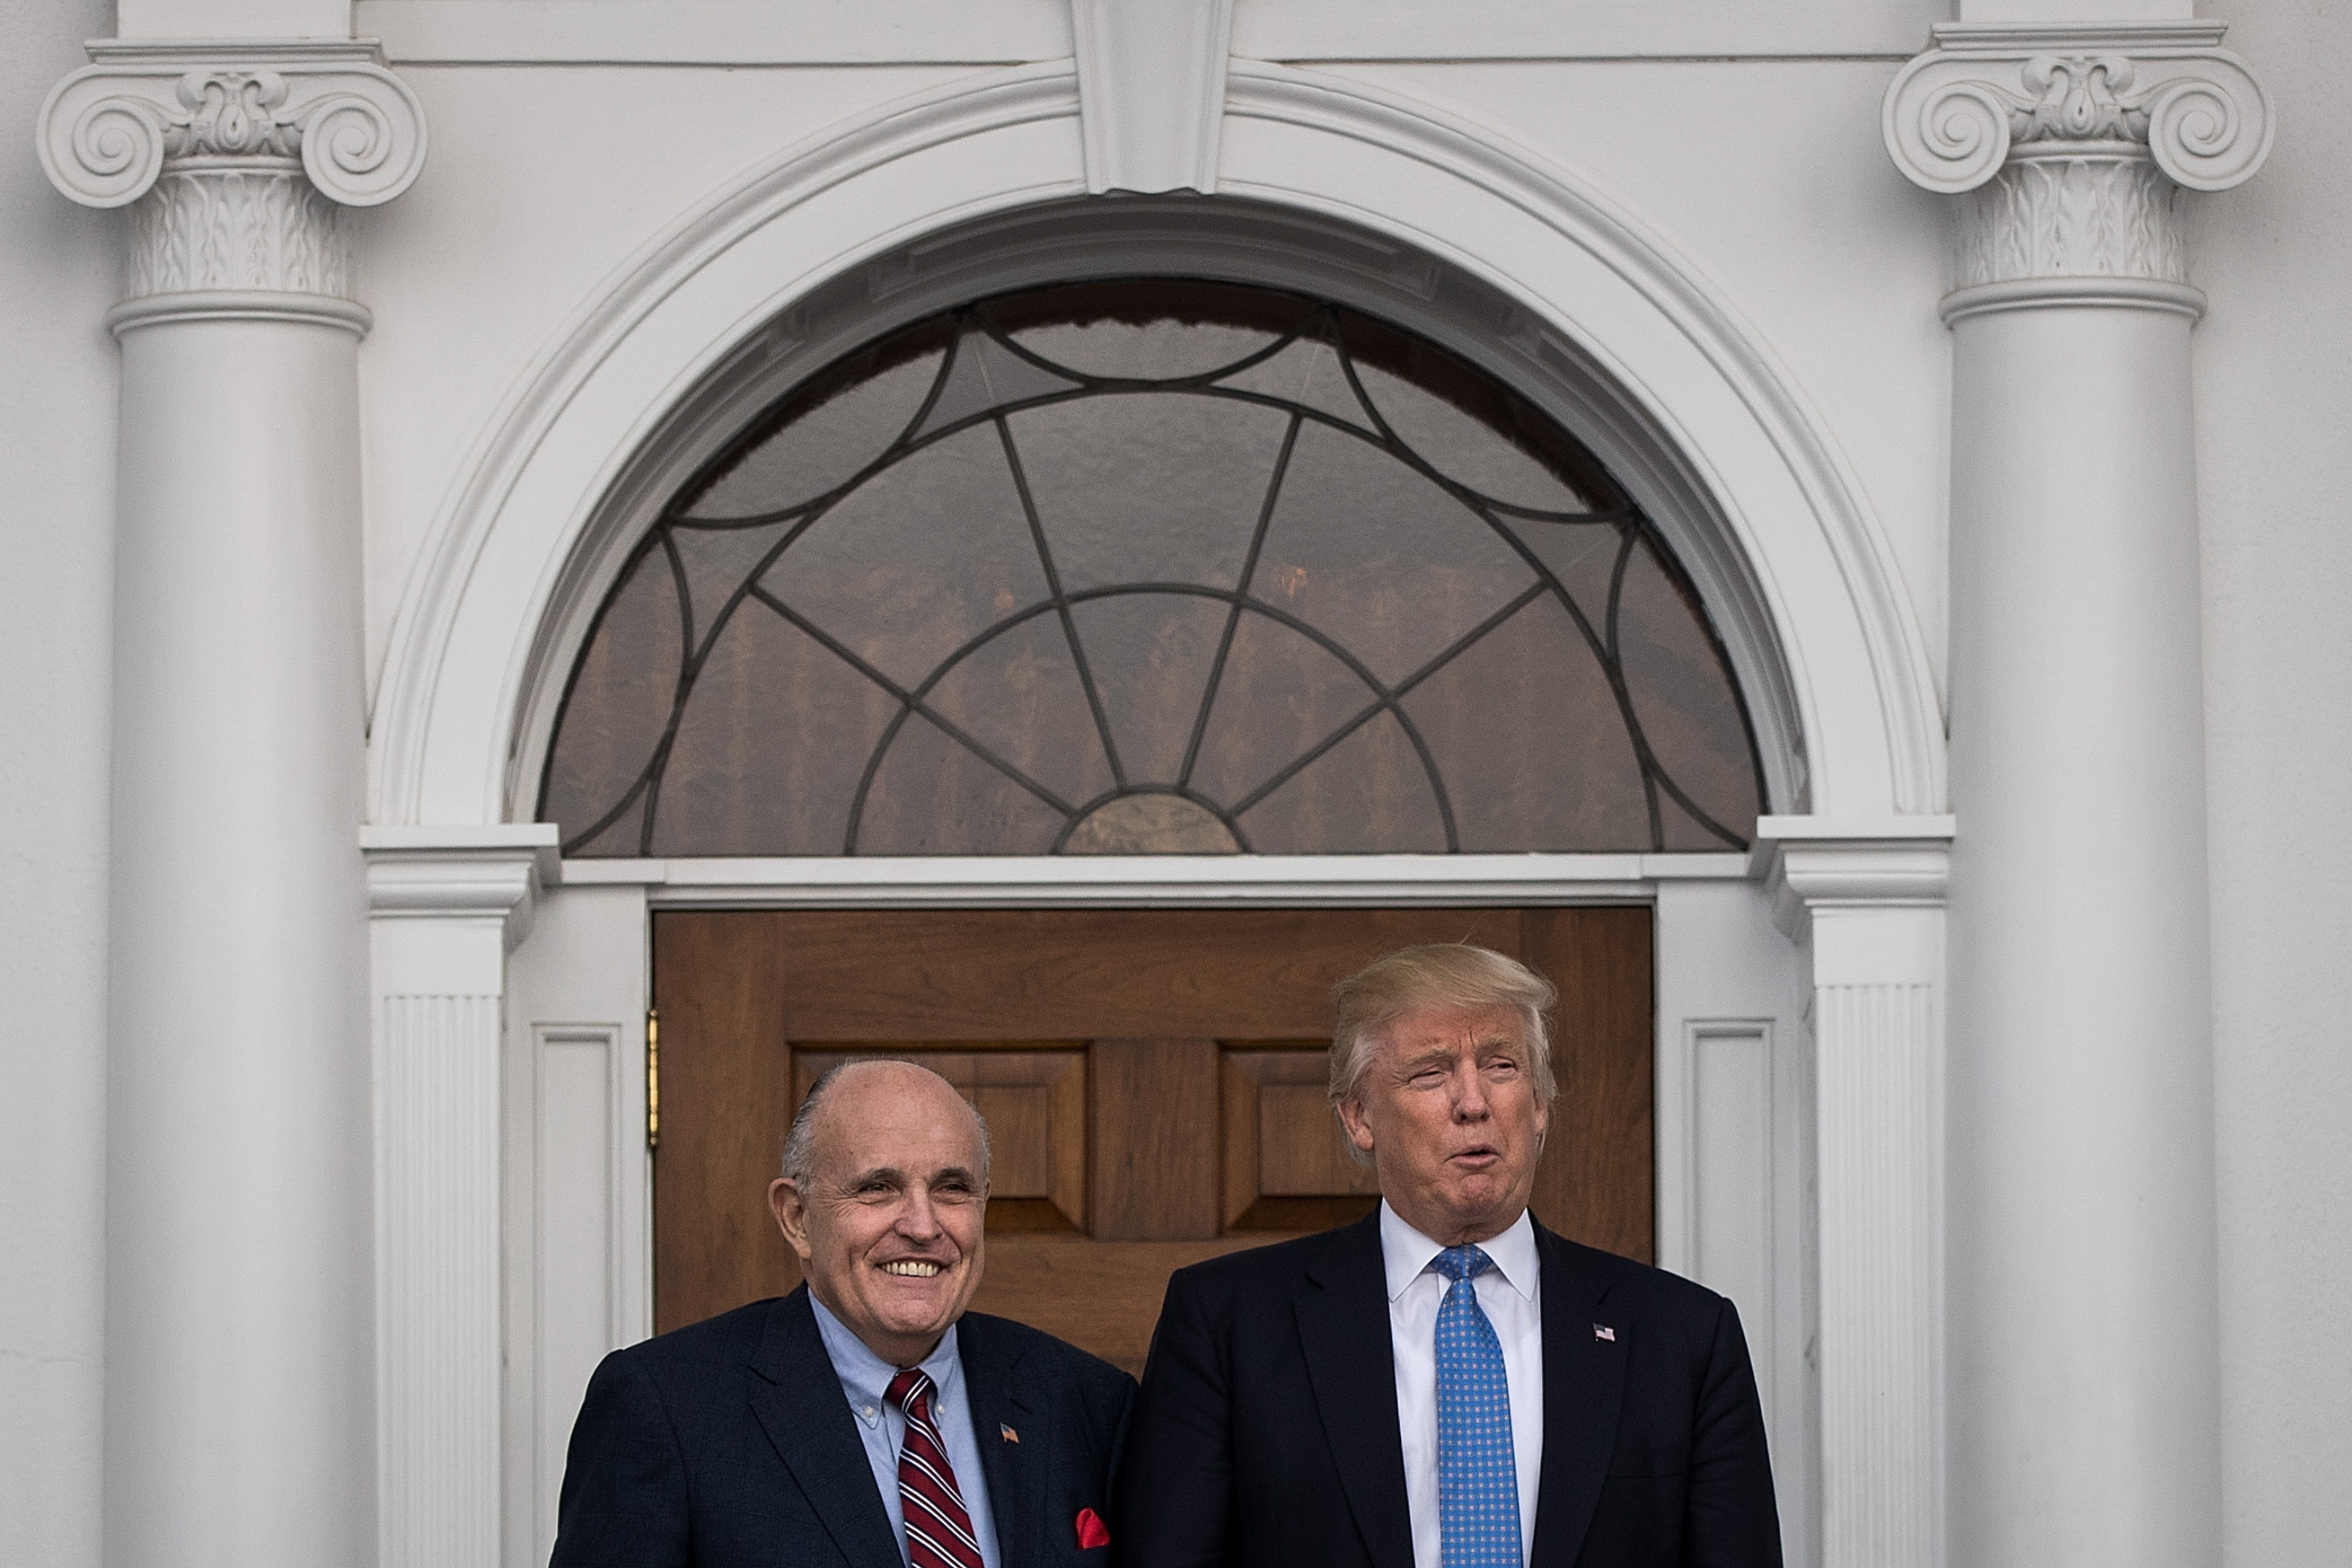 Giuliani and Trump stand between two white columns, smiling.